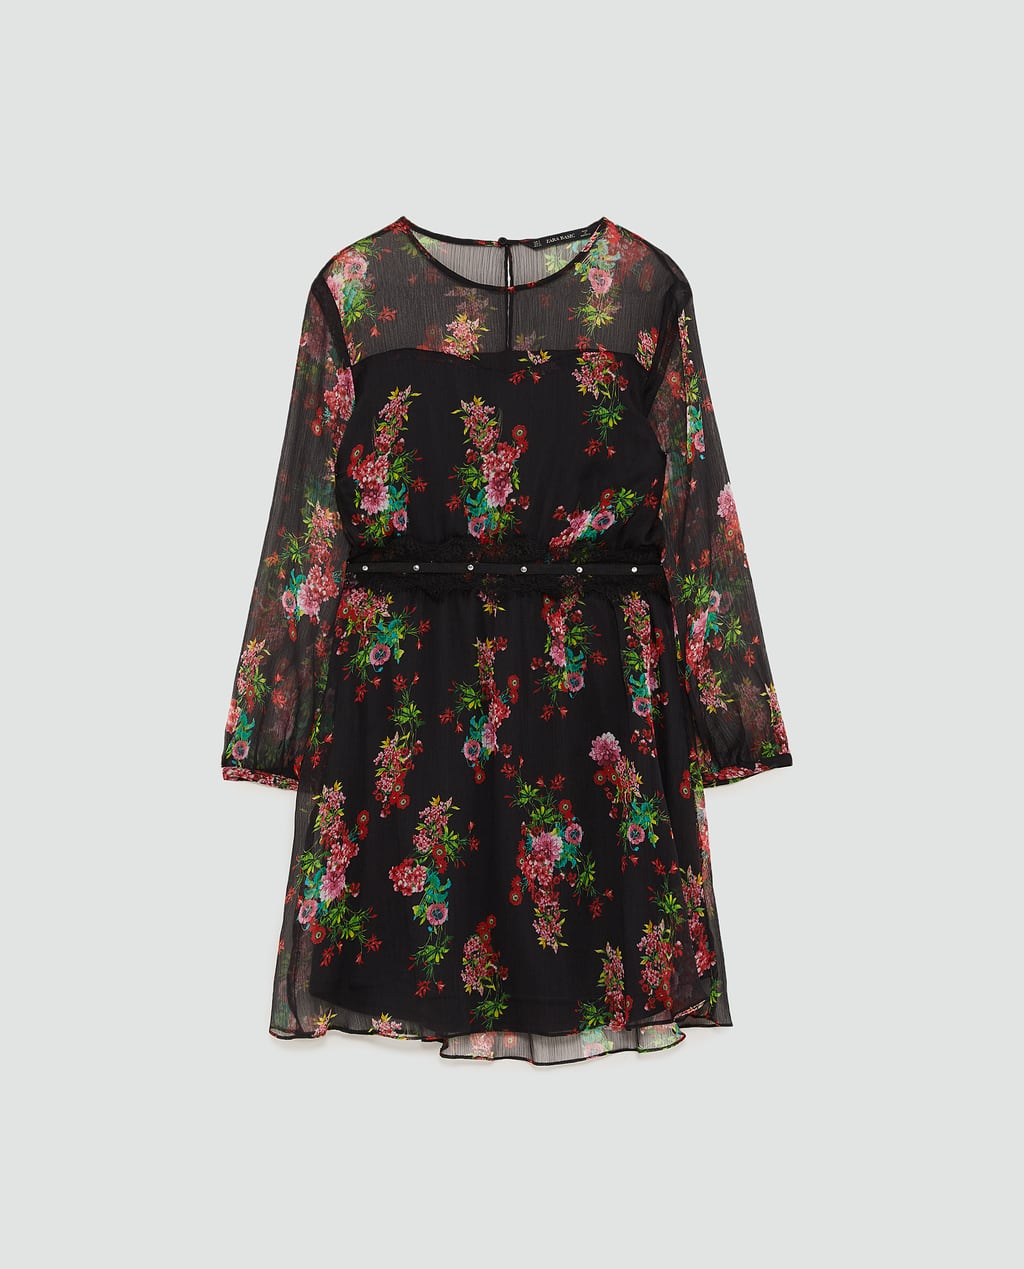 - Flowing round neck dress with long sleeves and elastic waist. Features a lace appliqué detail with studs, matching interior lining and a buttoned opening in the back.